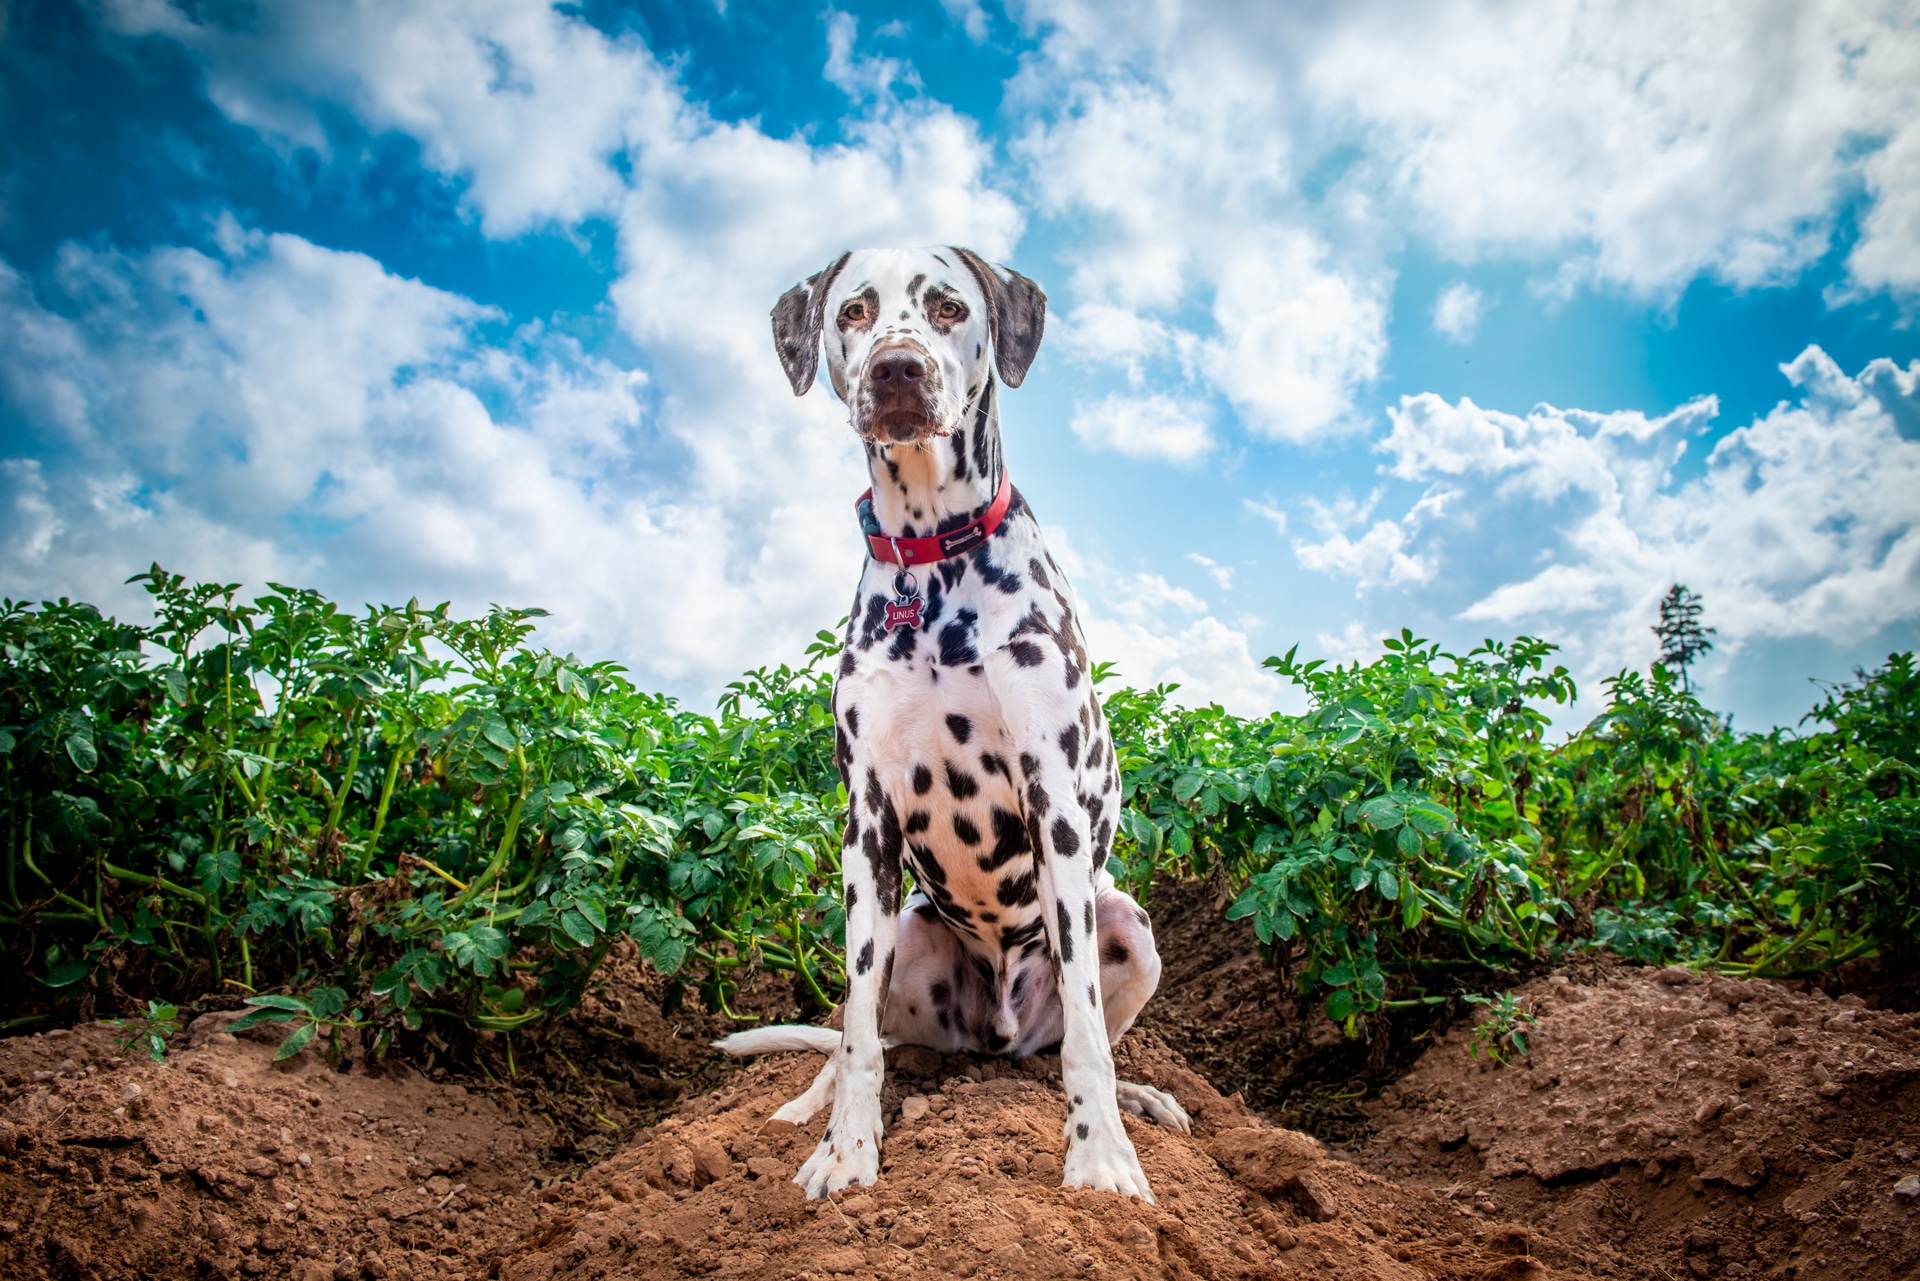 Linus the Dalmatian